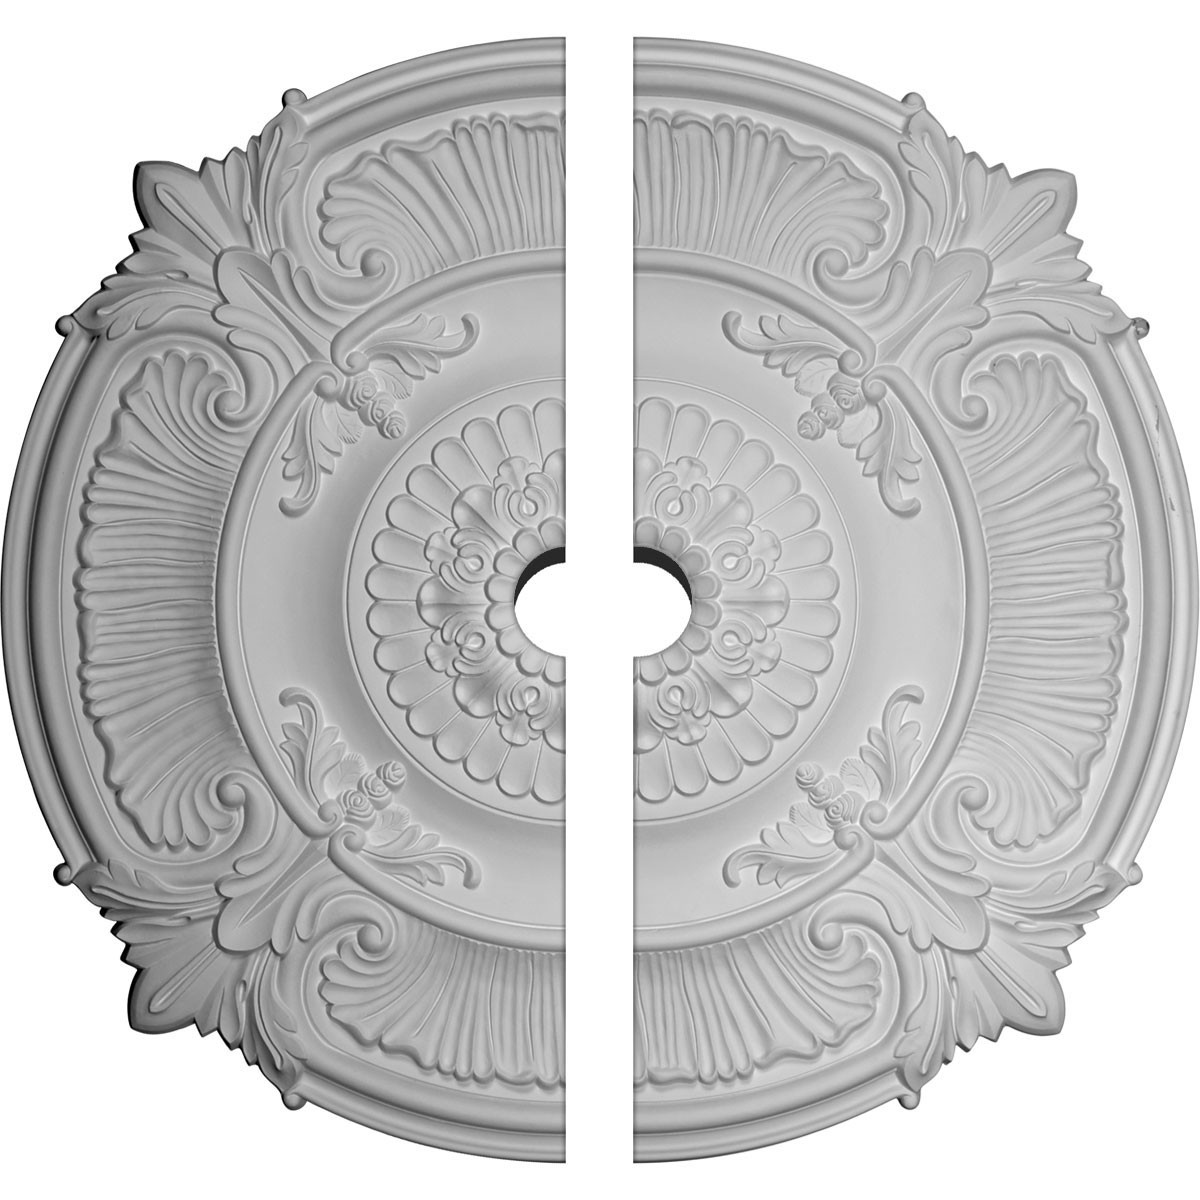 """EM-CM53AT2-05000 - 53 1/2""""OD x 5""""ID x 3 1/2""""P Attica Acanthus Leaf Ceiling Medallion, Two Piece (Fits Canopies up to 5"""")"""